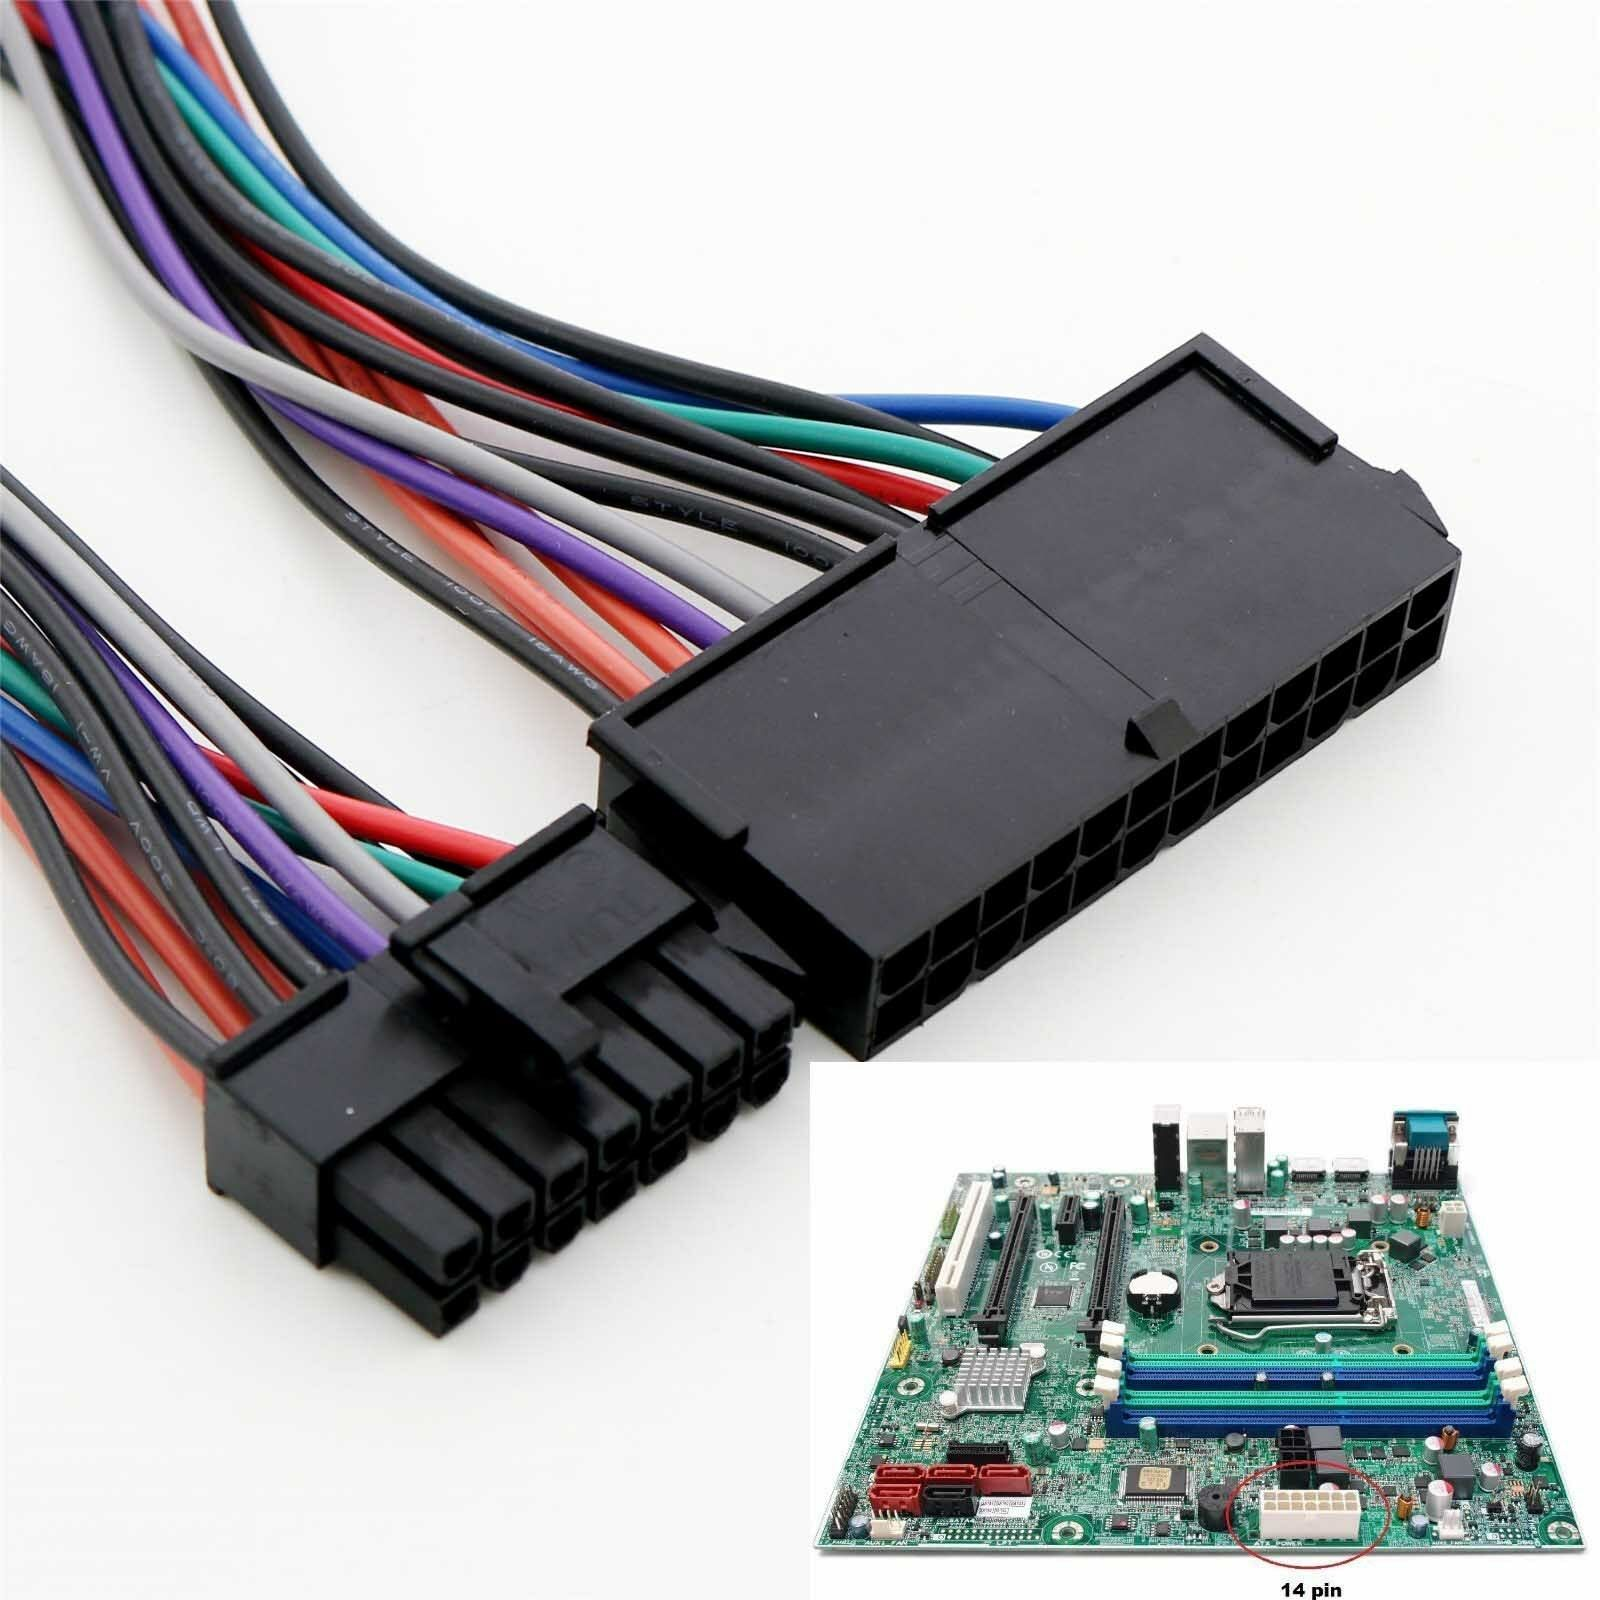 24 Pin to 14 Pin PSU Main Power Supply ATX Adapter Cable Compatible with Lenovo IBM 24p 14p